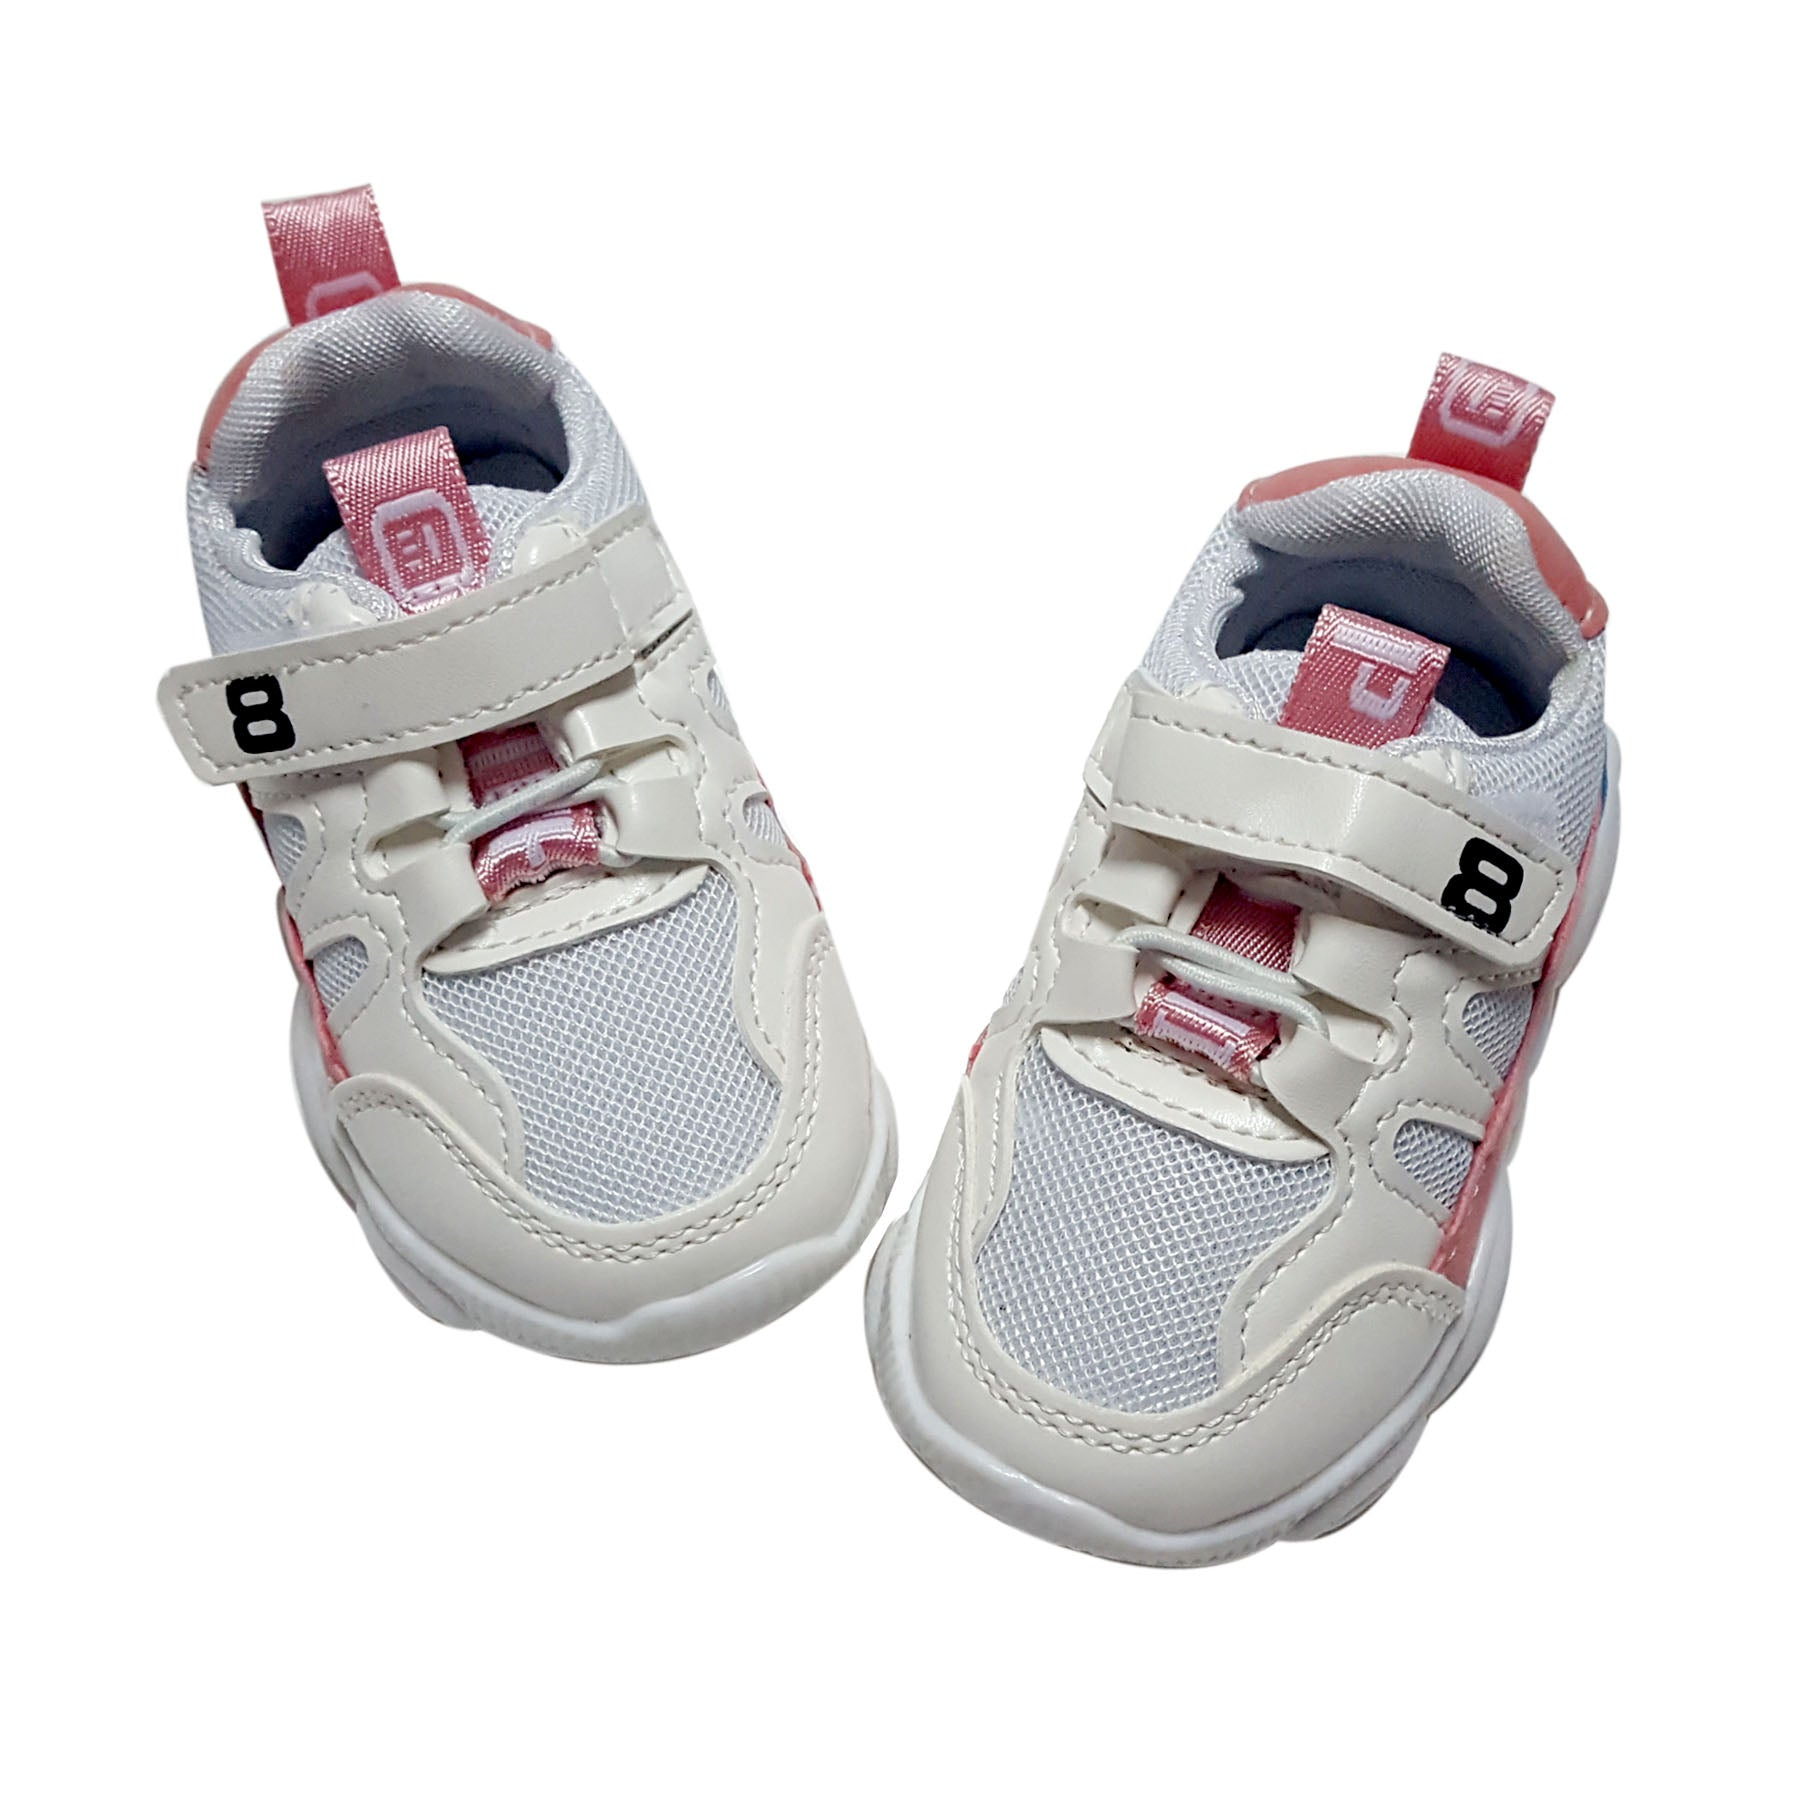 S178 Raf Raf Sports Shoes - Byron Pink New!